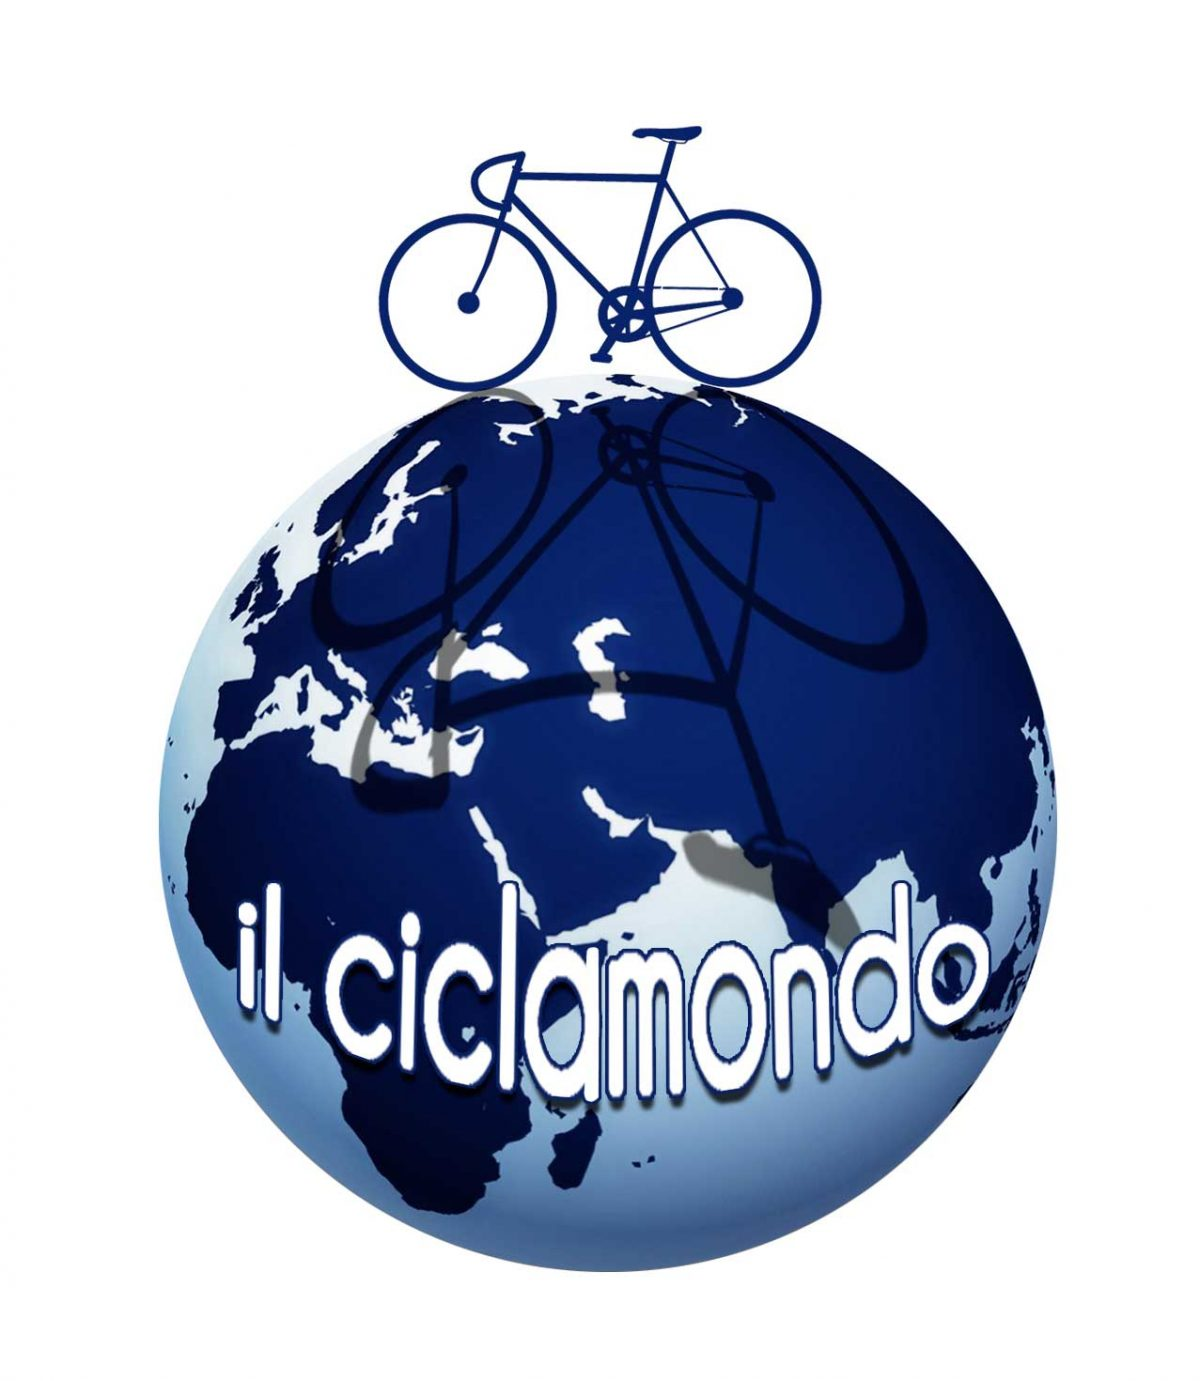 Cycling in Italy, Il Ciclamondo